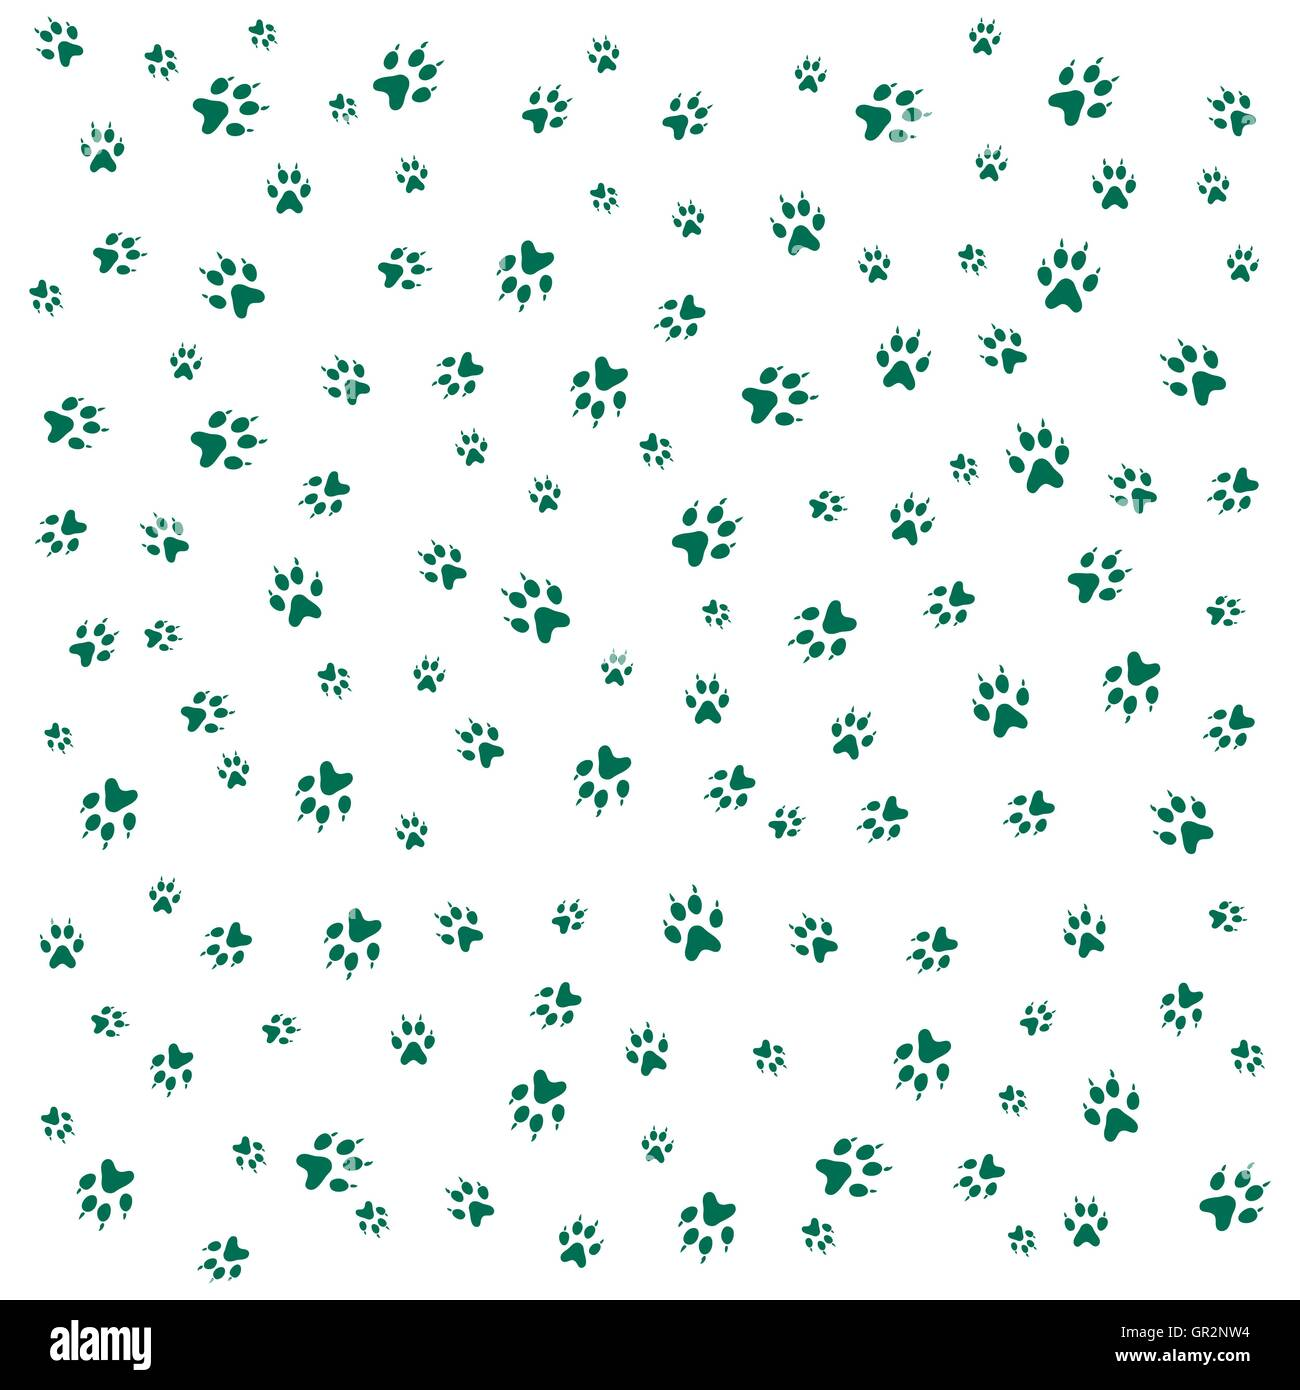 Nice picture of wild animal traces on a white background - Stock Vector